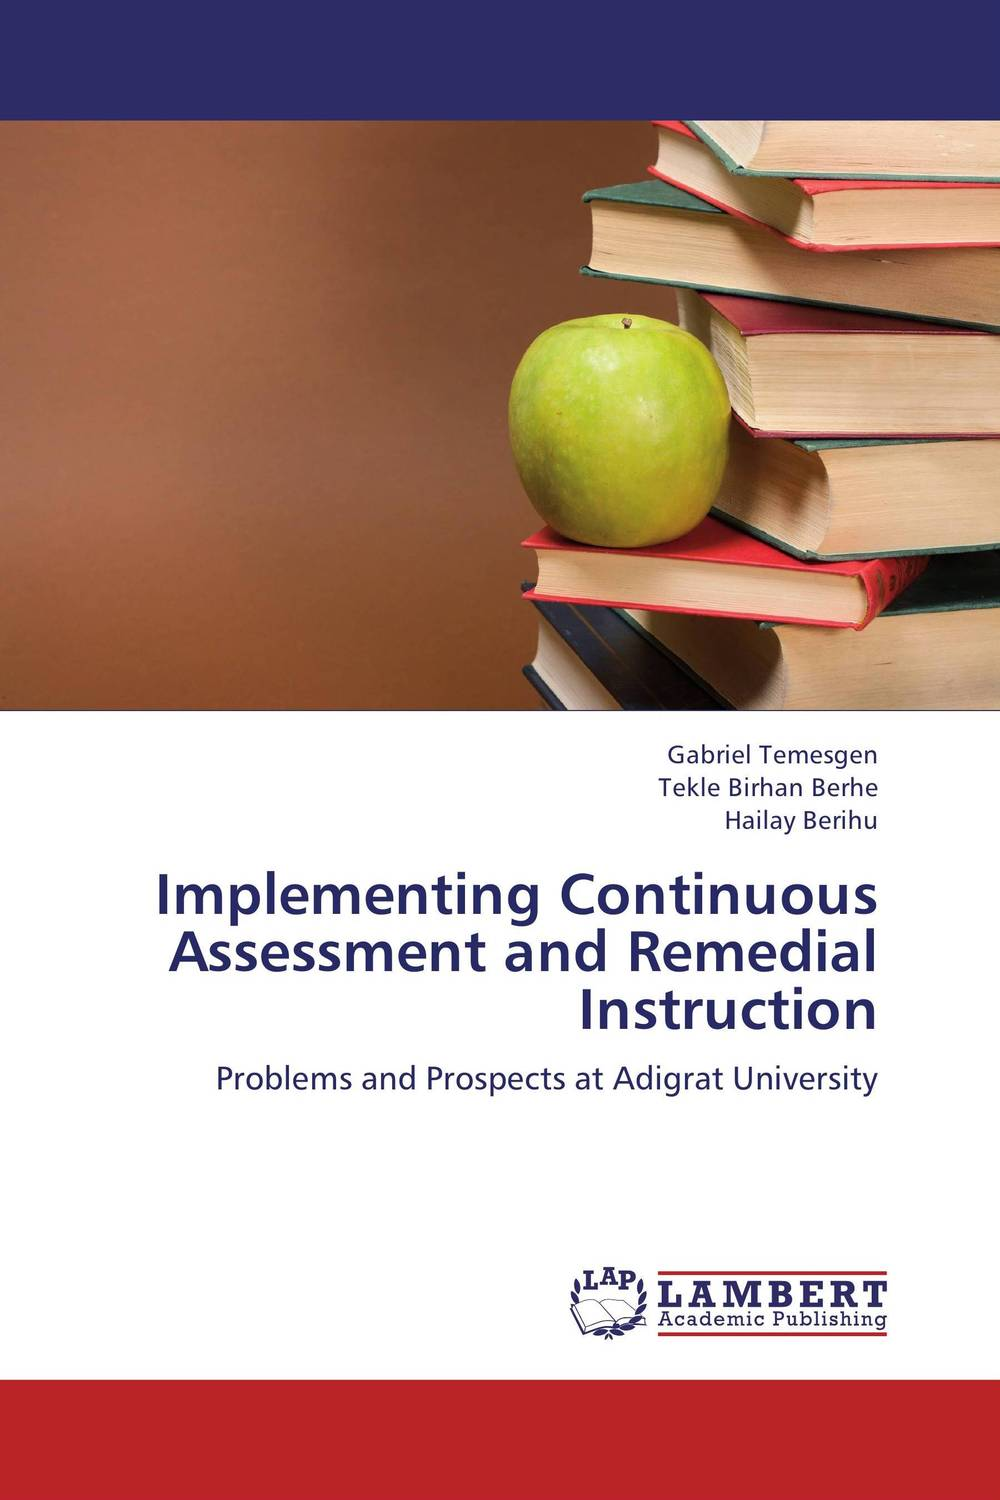 Implementing Continuous Assessment and Remedial Instruction kumar rakesh subhangi dutta and kumara shama handbook on implementing gender recognition